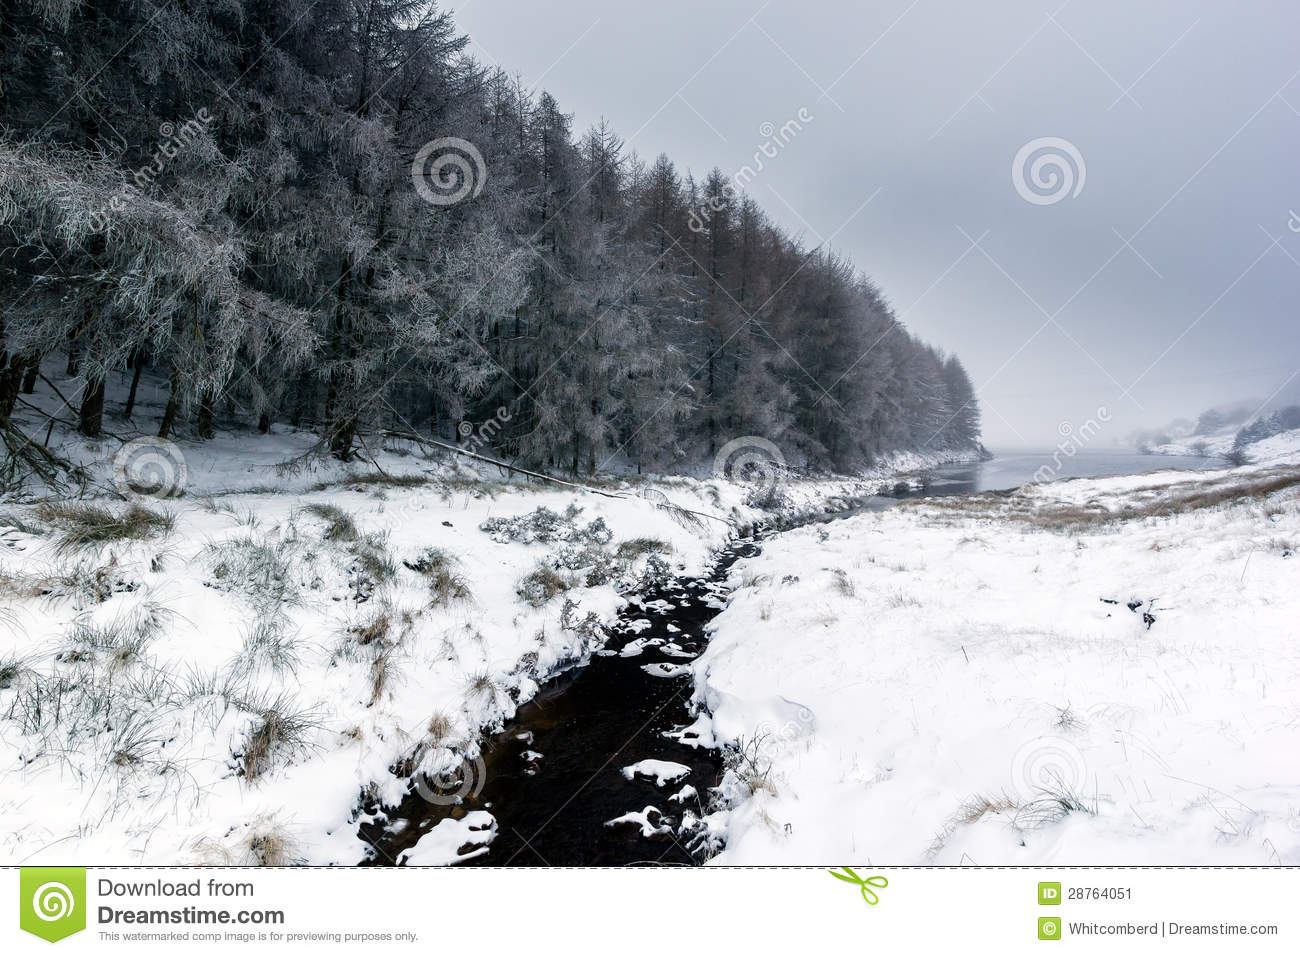 Small stream running through a snow capped landscape